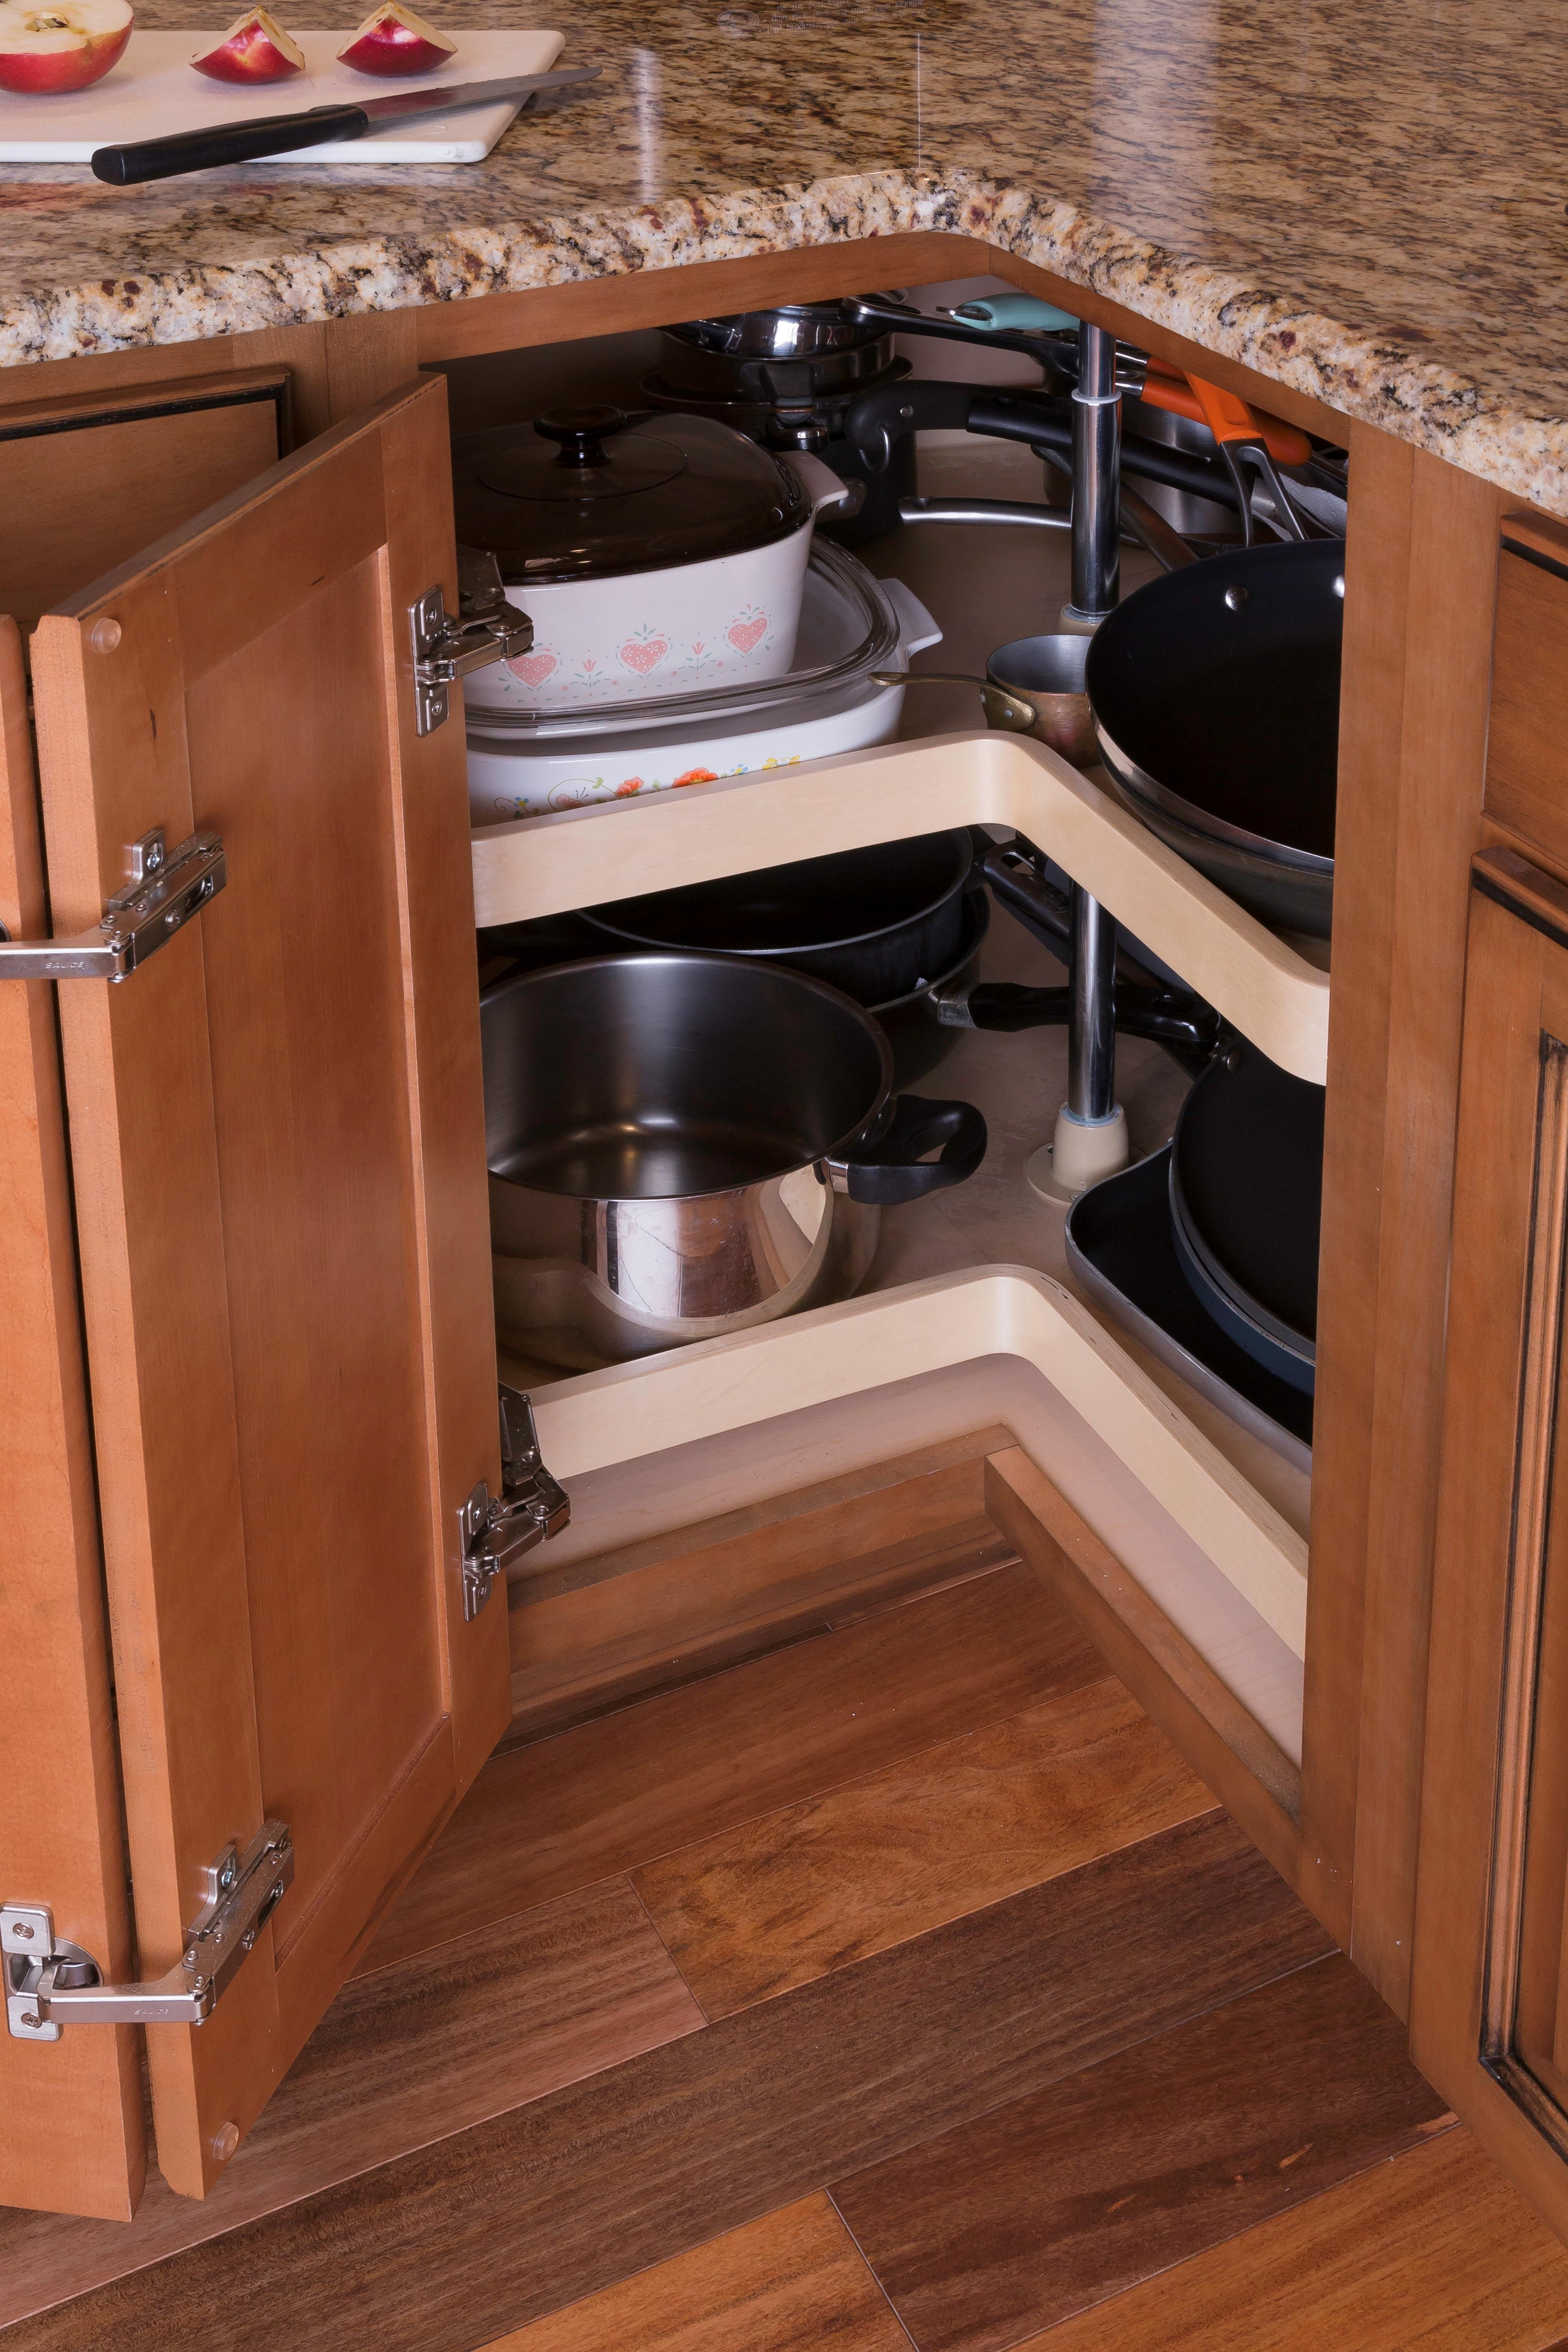 base cabinet lazy susan must do for home so much space base cabinets cabinet on kitchen organization lazy susan cabinet id=55170